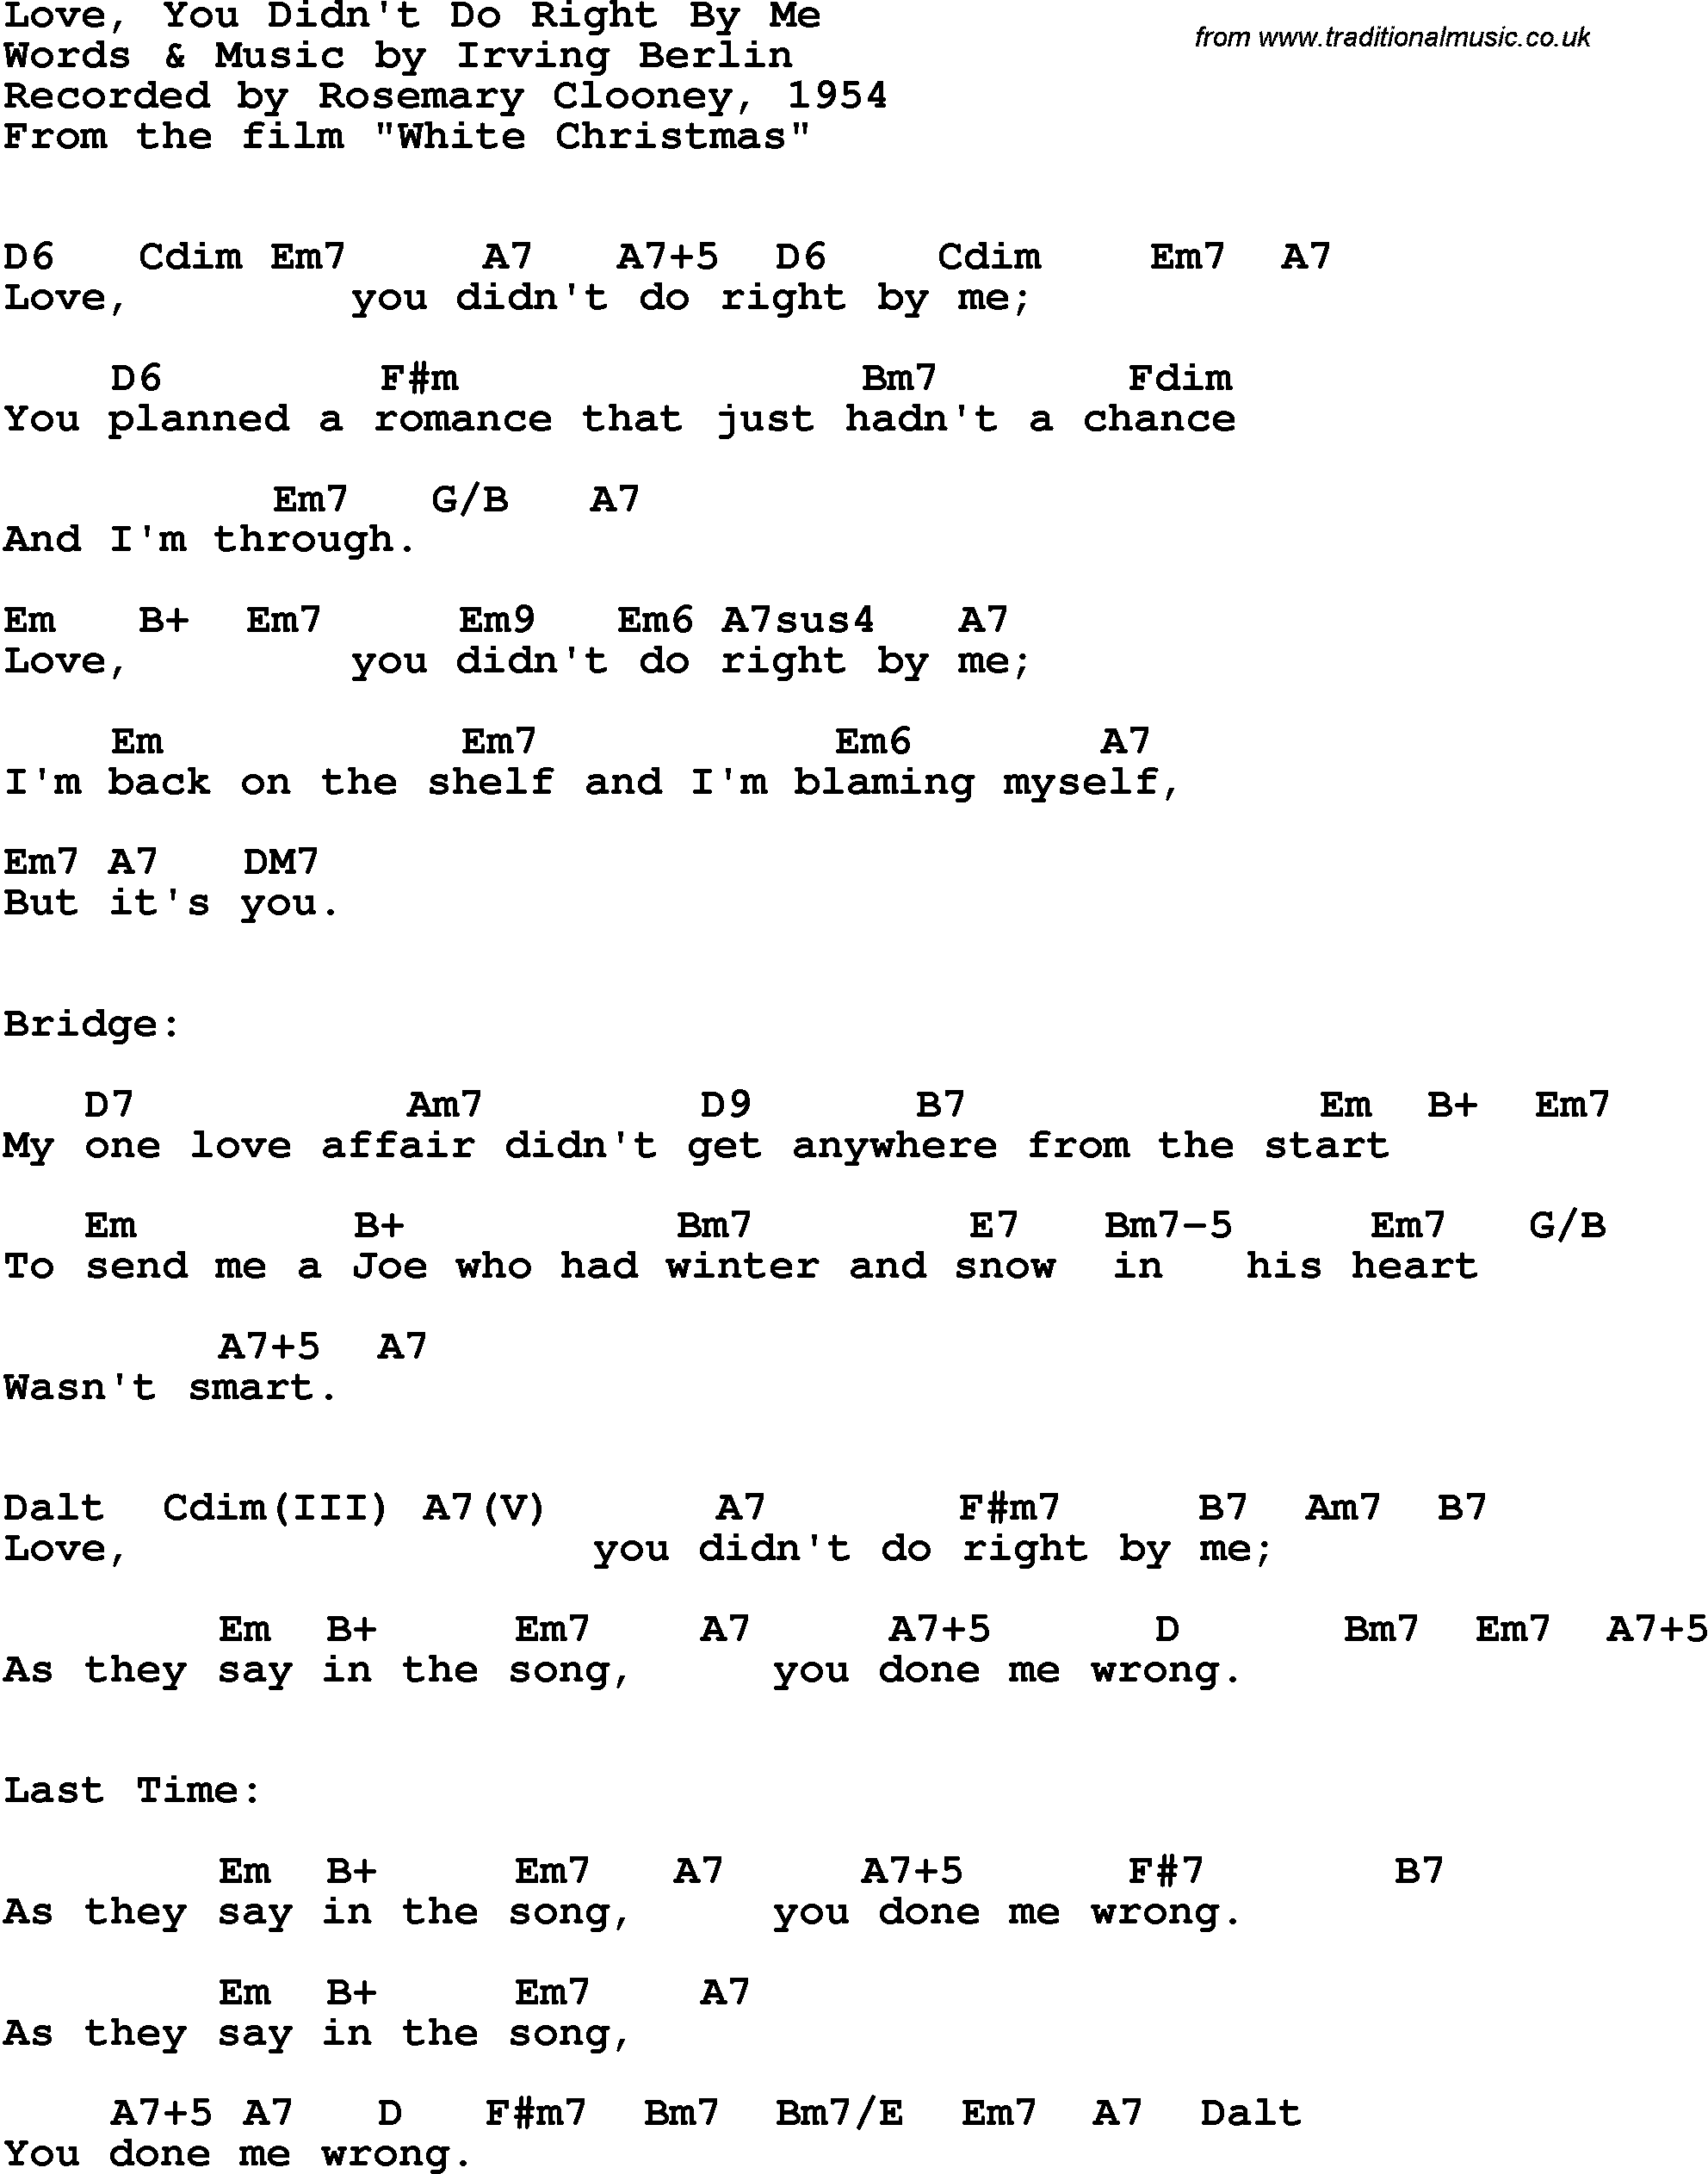 Song Lyrics With Guitar Chords For Love You Didnt Do Right By Me